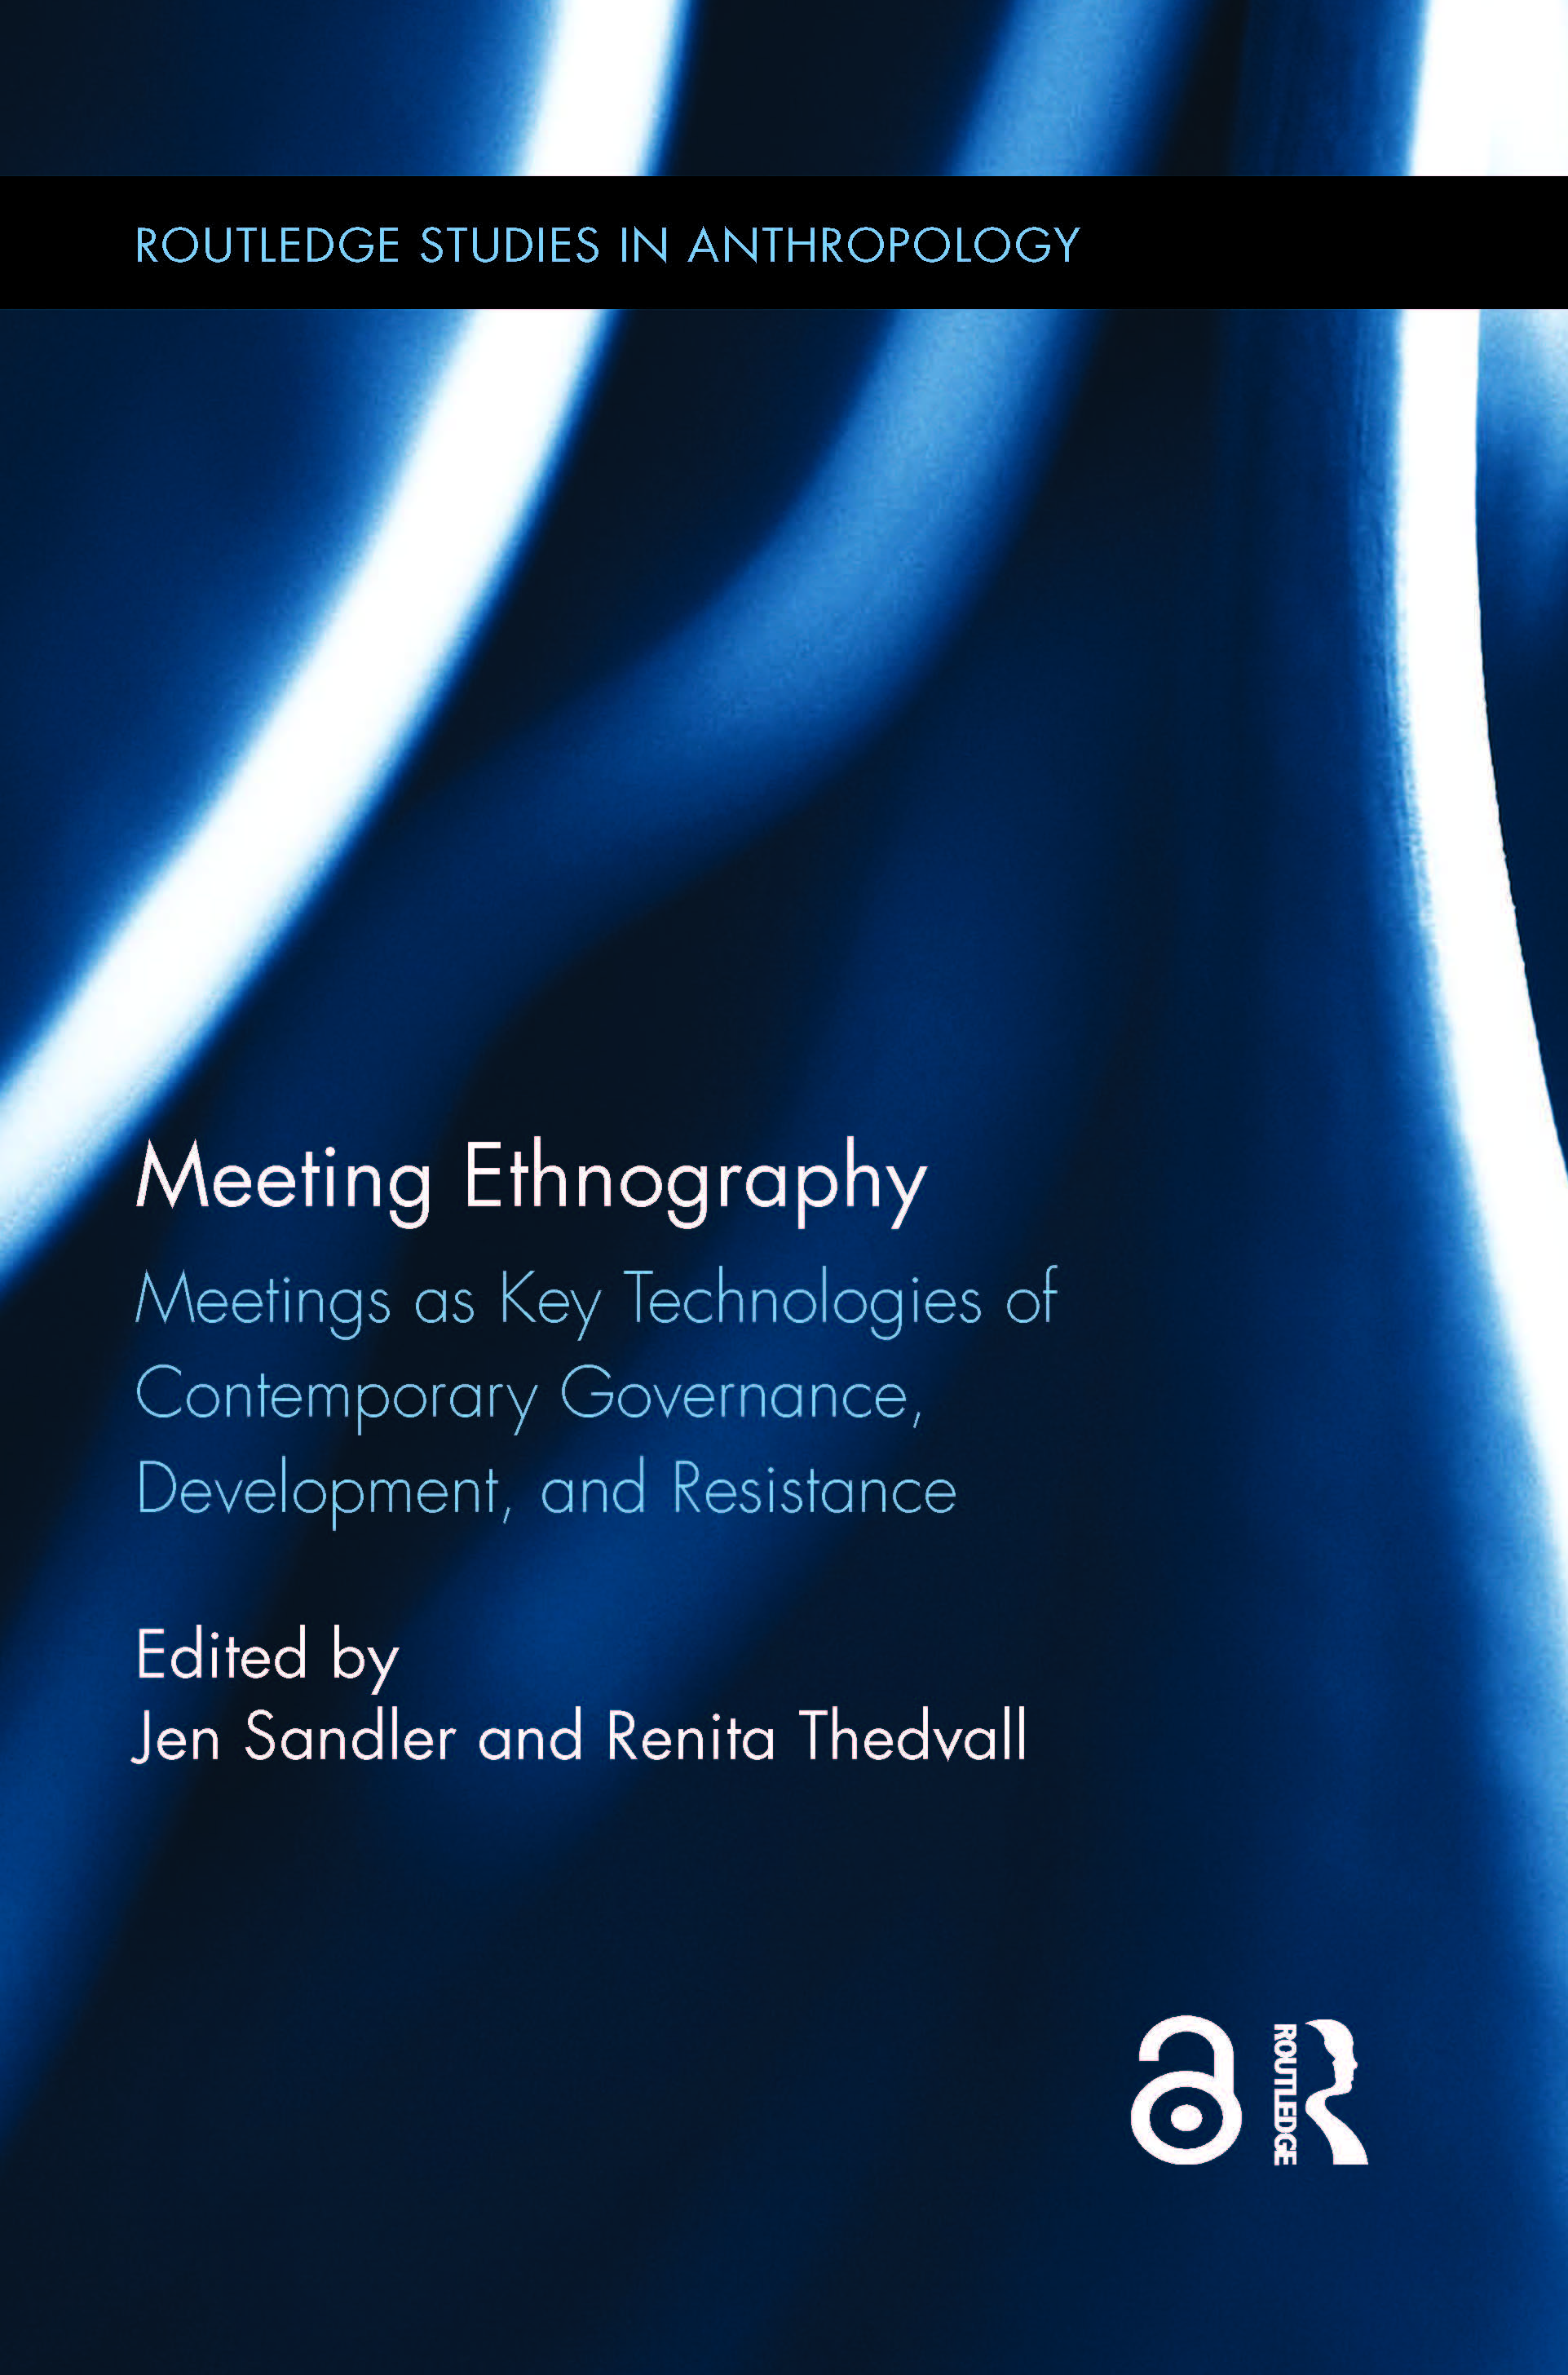 Meeting Ethnography: Meetings as Key Technologies of Contemporary Governance, Development, and Resistance book cover